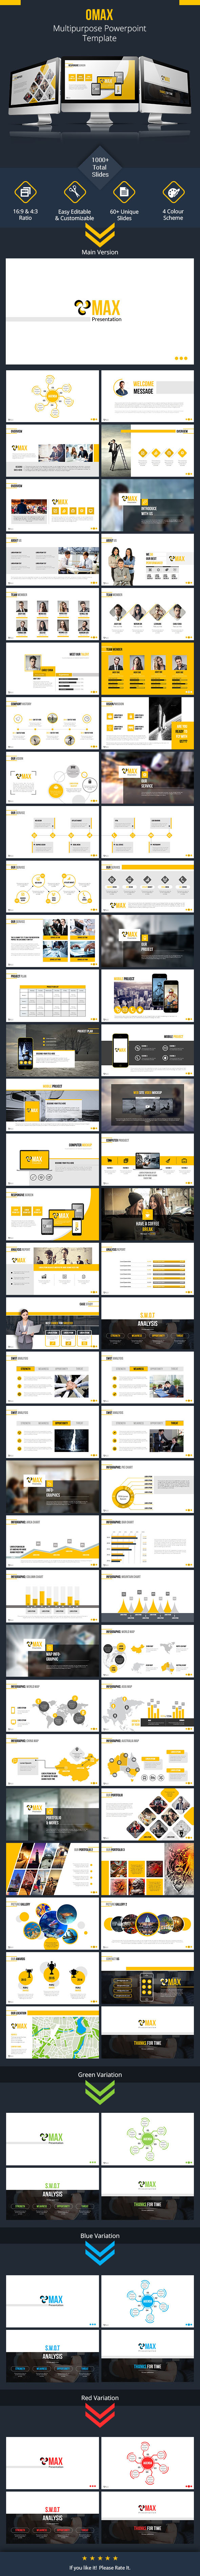 Omax Powerpoint Presentation Template